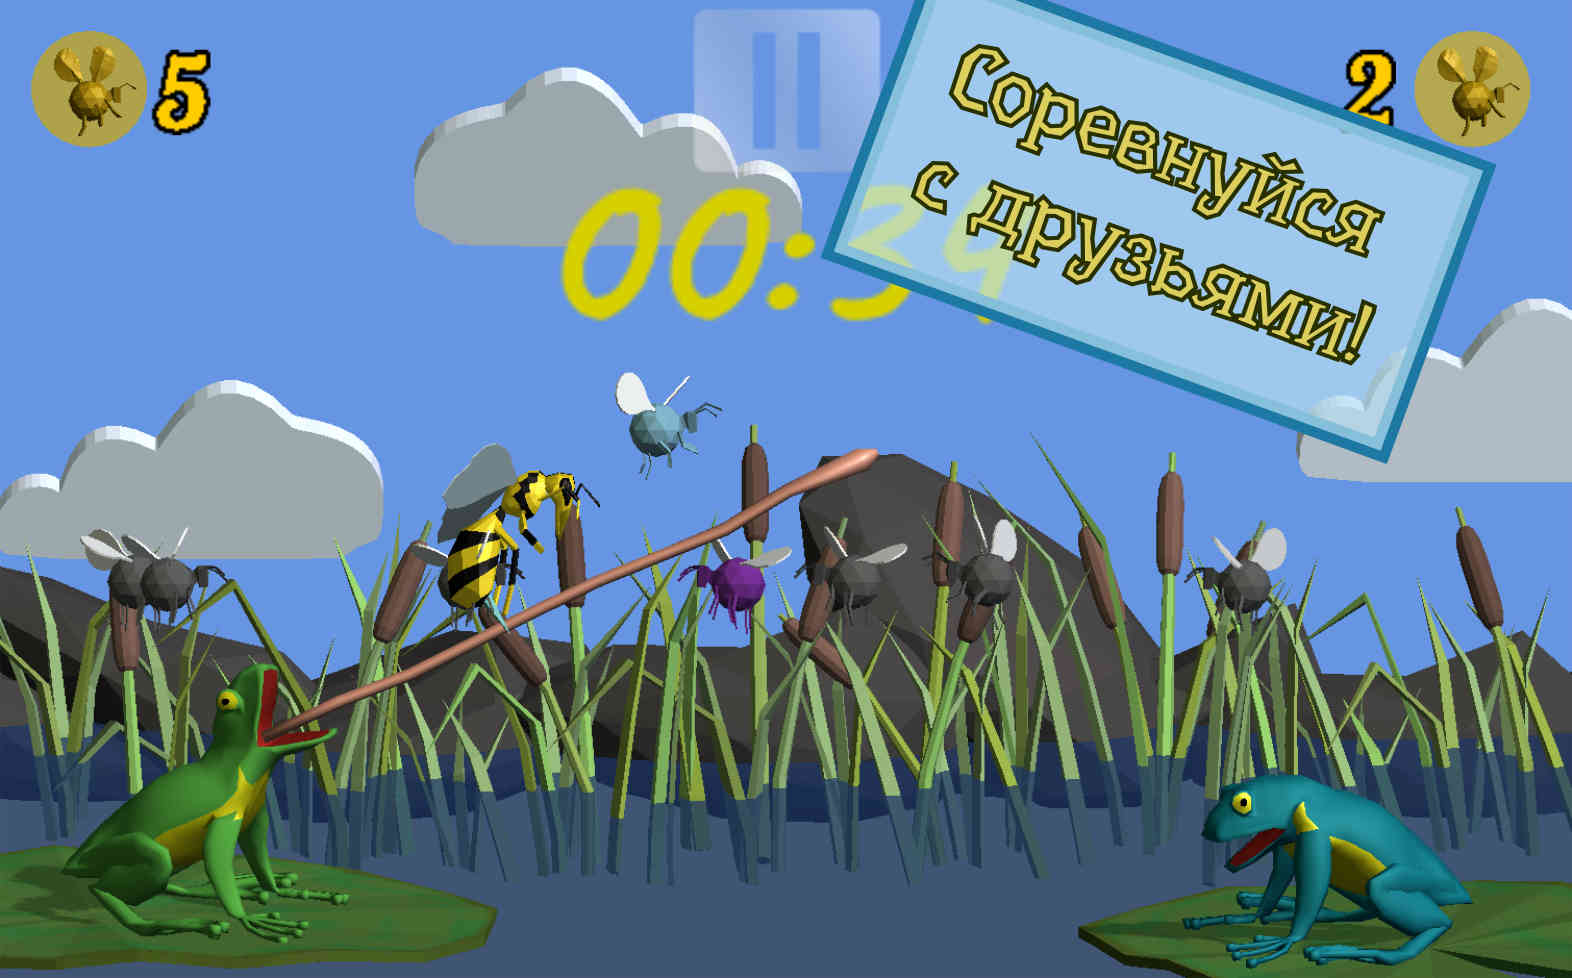 Frog and bees screenshot3 | Лавкрафт, ОЧПБР и Реинкарнация Road Rush | В разработке #105